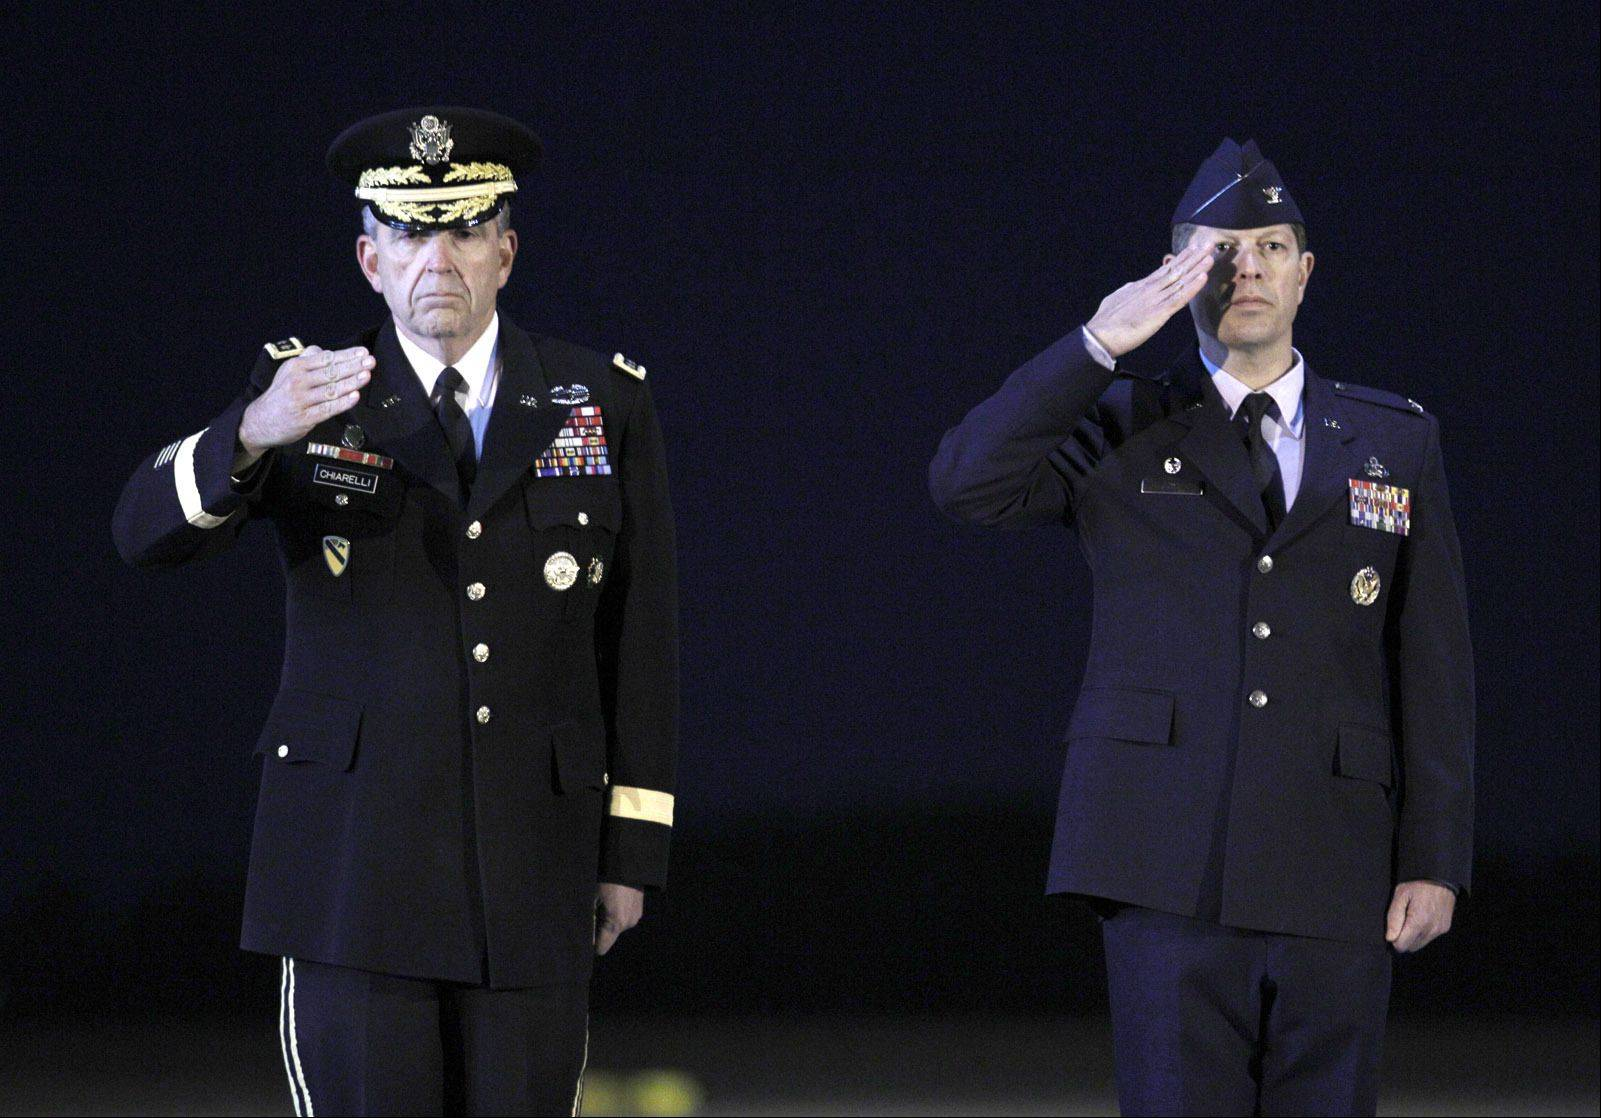 Vice Chief of Staff Army Gen. Peter W. Chiarelli, left, and Air Force Col. Thomas Joyce salute Sunday as the remains of Army Staff Sgt. Jonathan M. Metzger of Indianapolis, Army Spc. Brian J. Leonhardt of Merrillville, Ind., Army Spc. Christopher Patterson of North Aurora and Army Spc. Robert J. Tauteris Jr. of Hamlet, Ind., upon arrival at Dover Air Force Base in Delaware. The men were killed in Afghanistan last week.